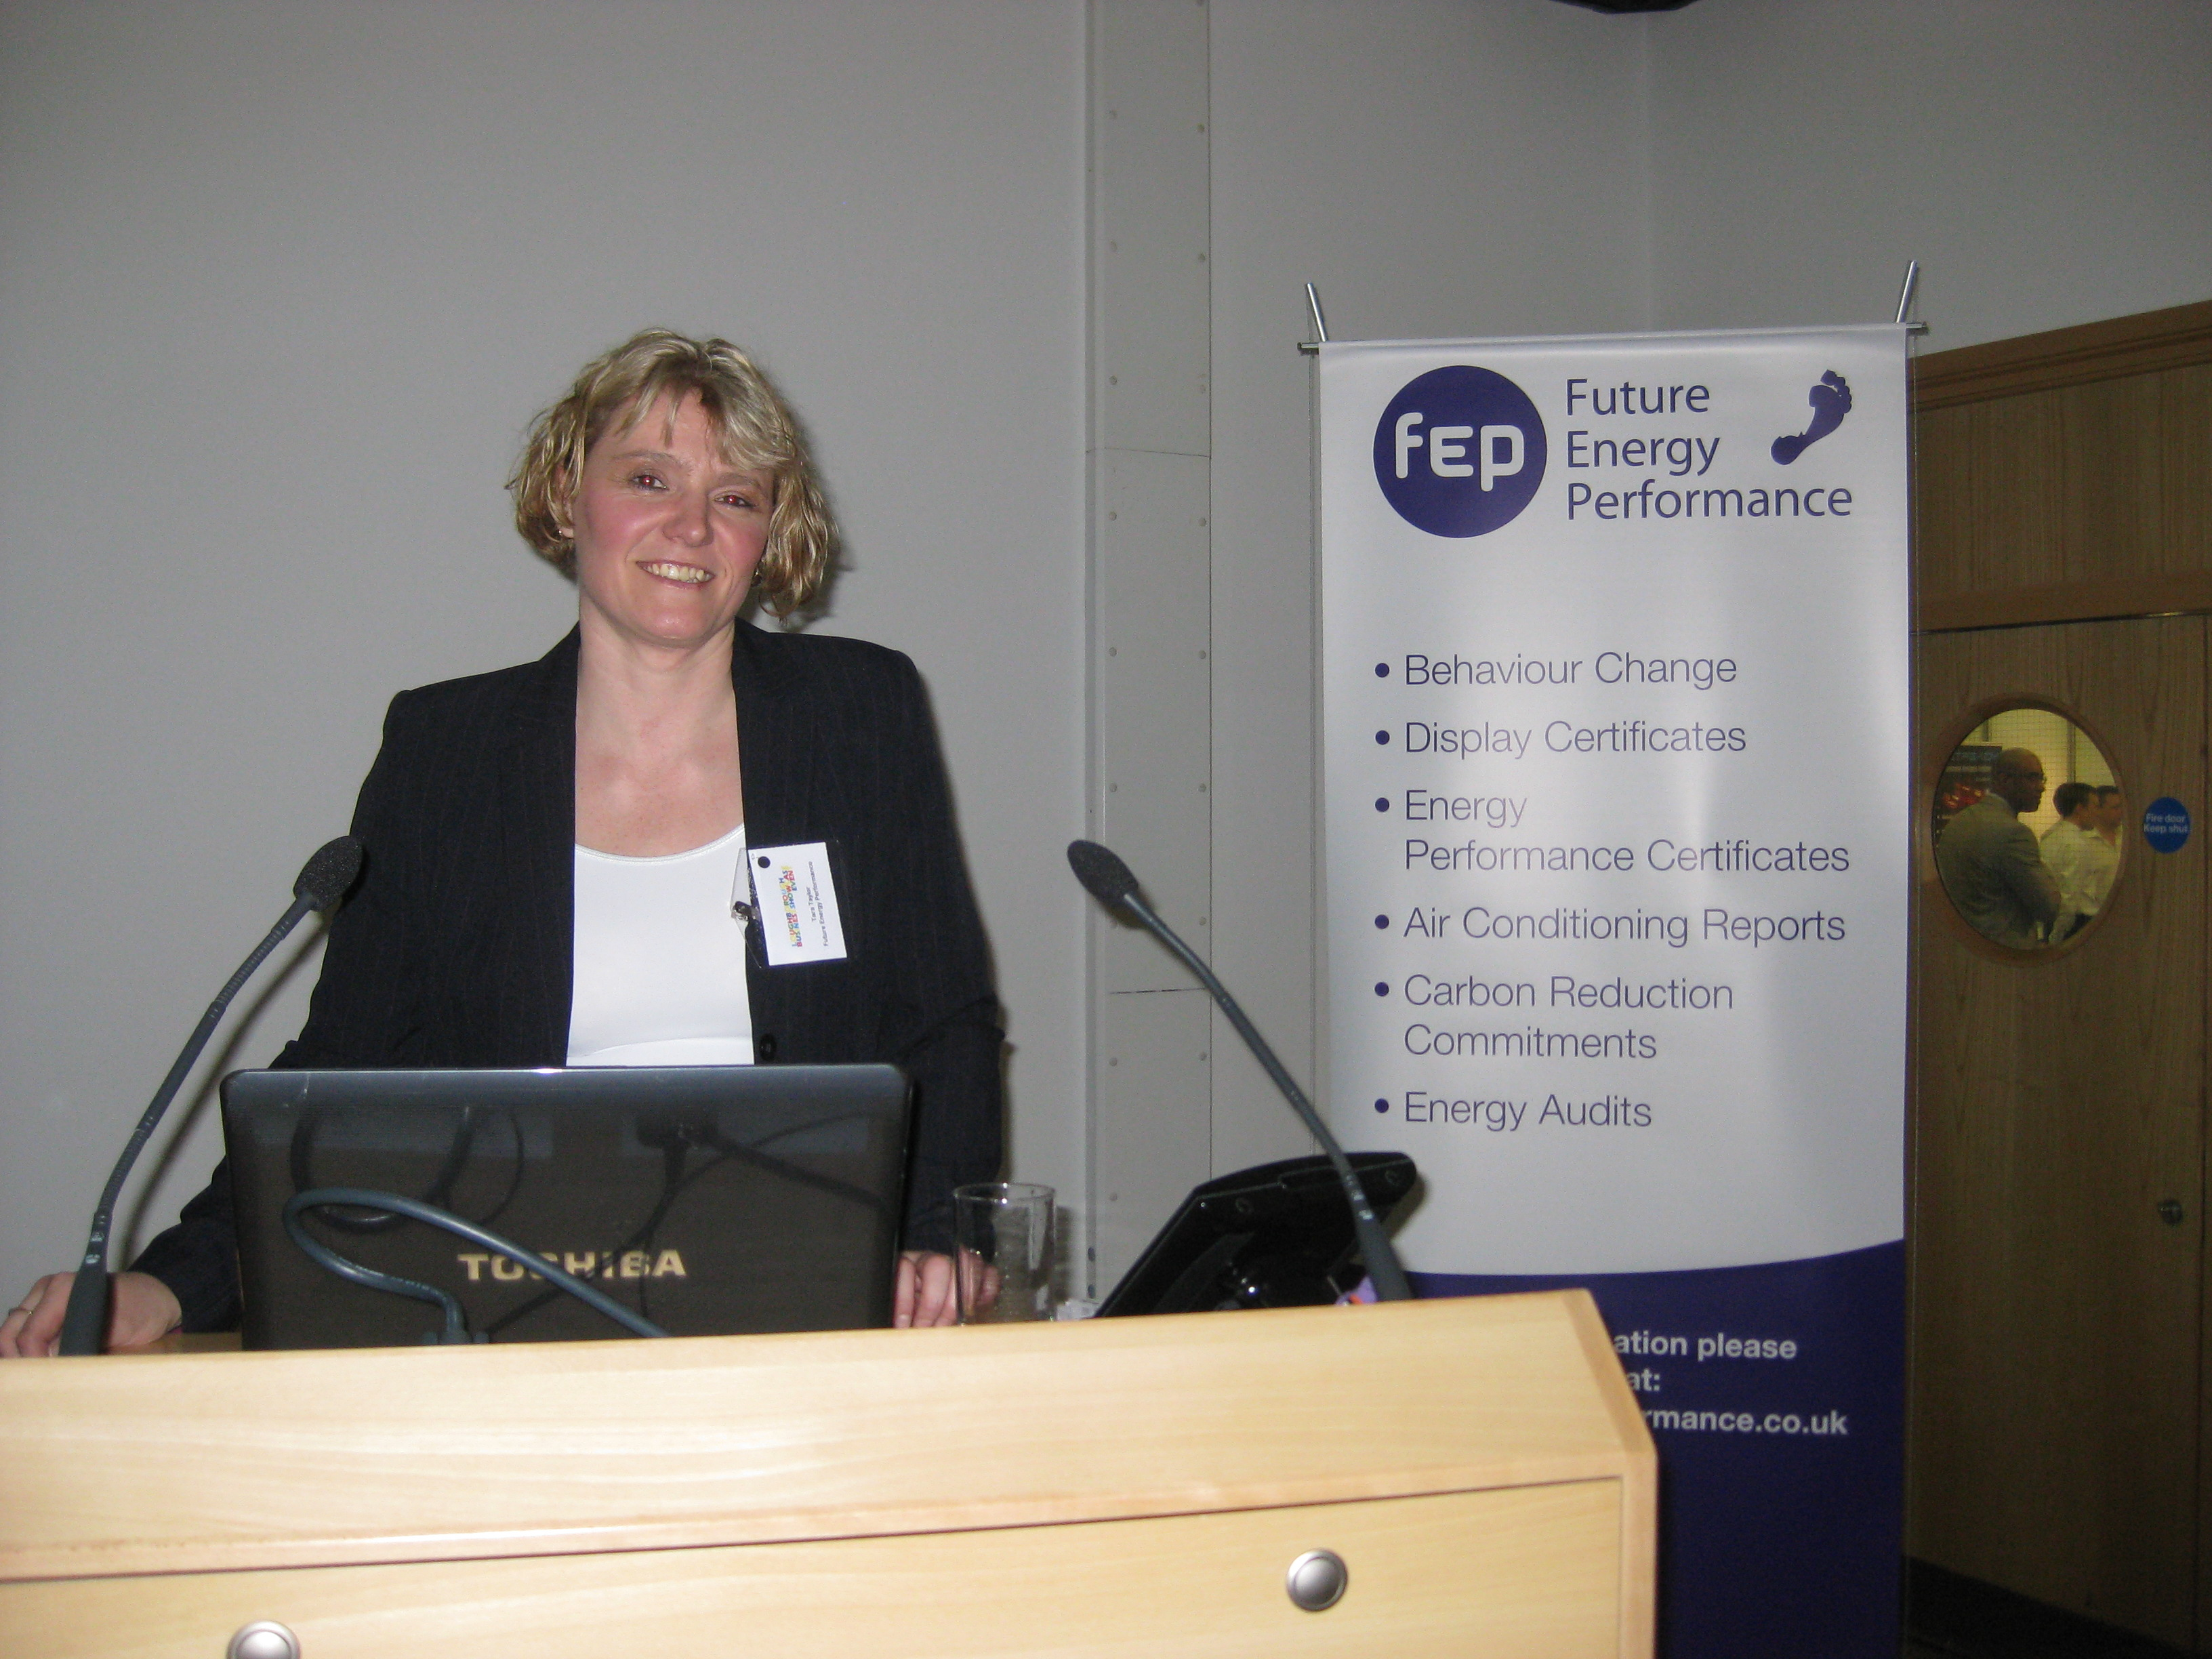 Tara Taylor of Future Energy Performance gave a fascinating talk on The Future of Energy Performance In Buildings